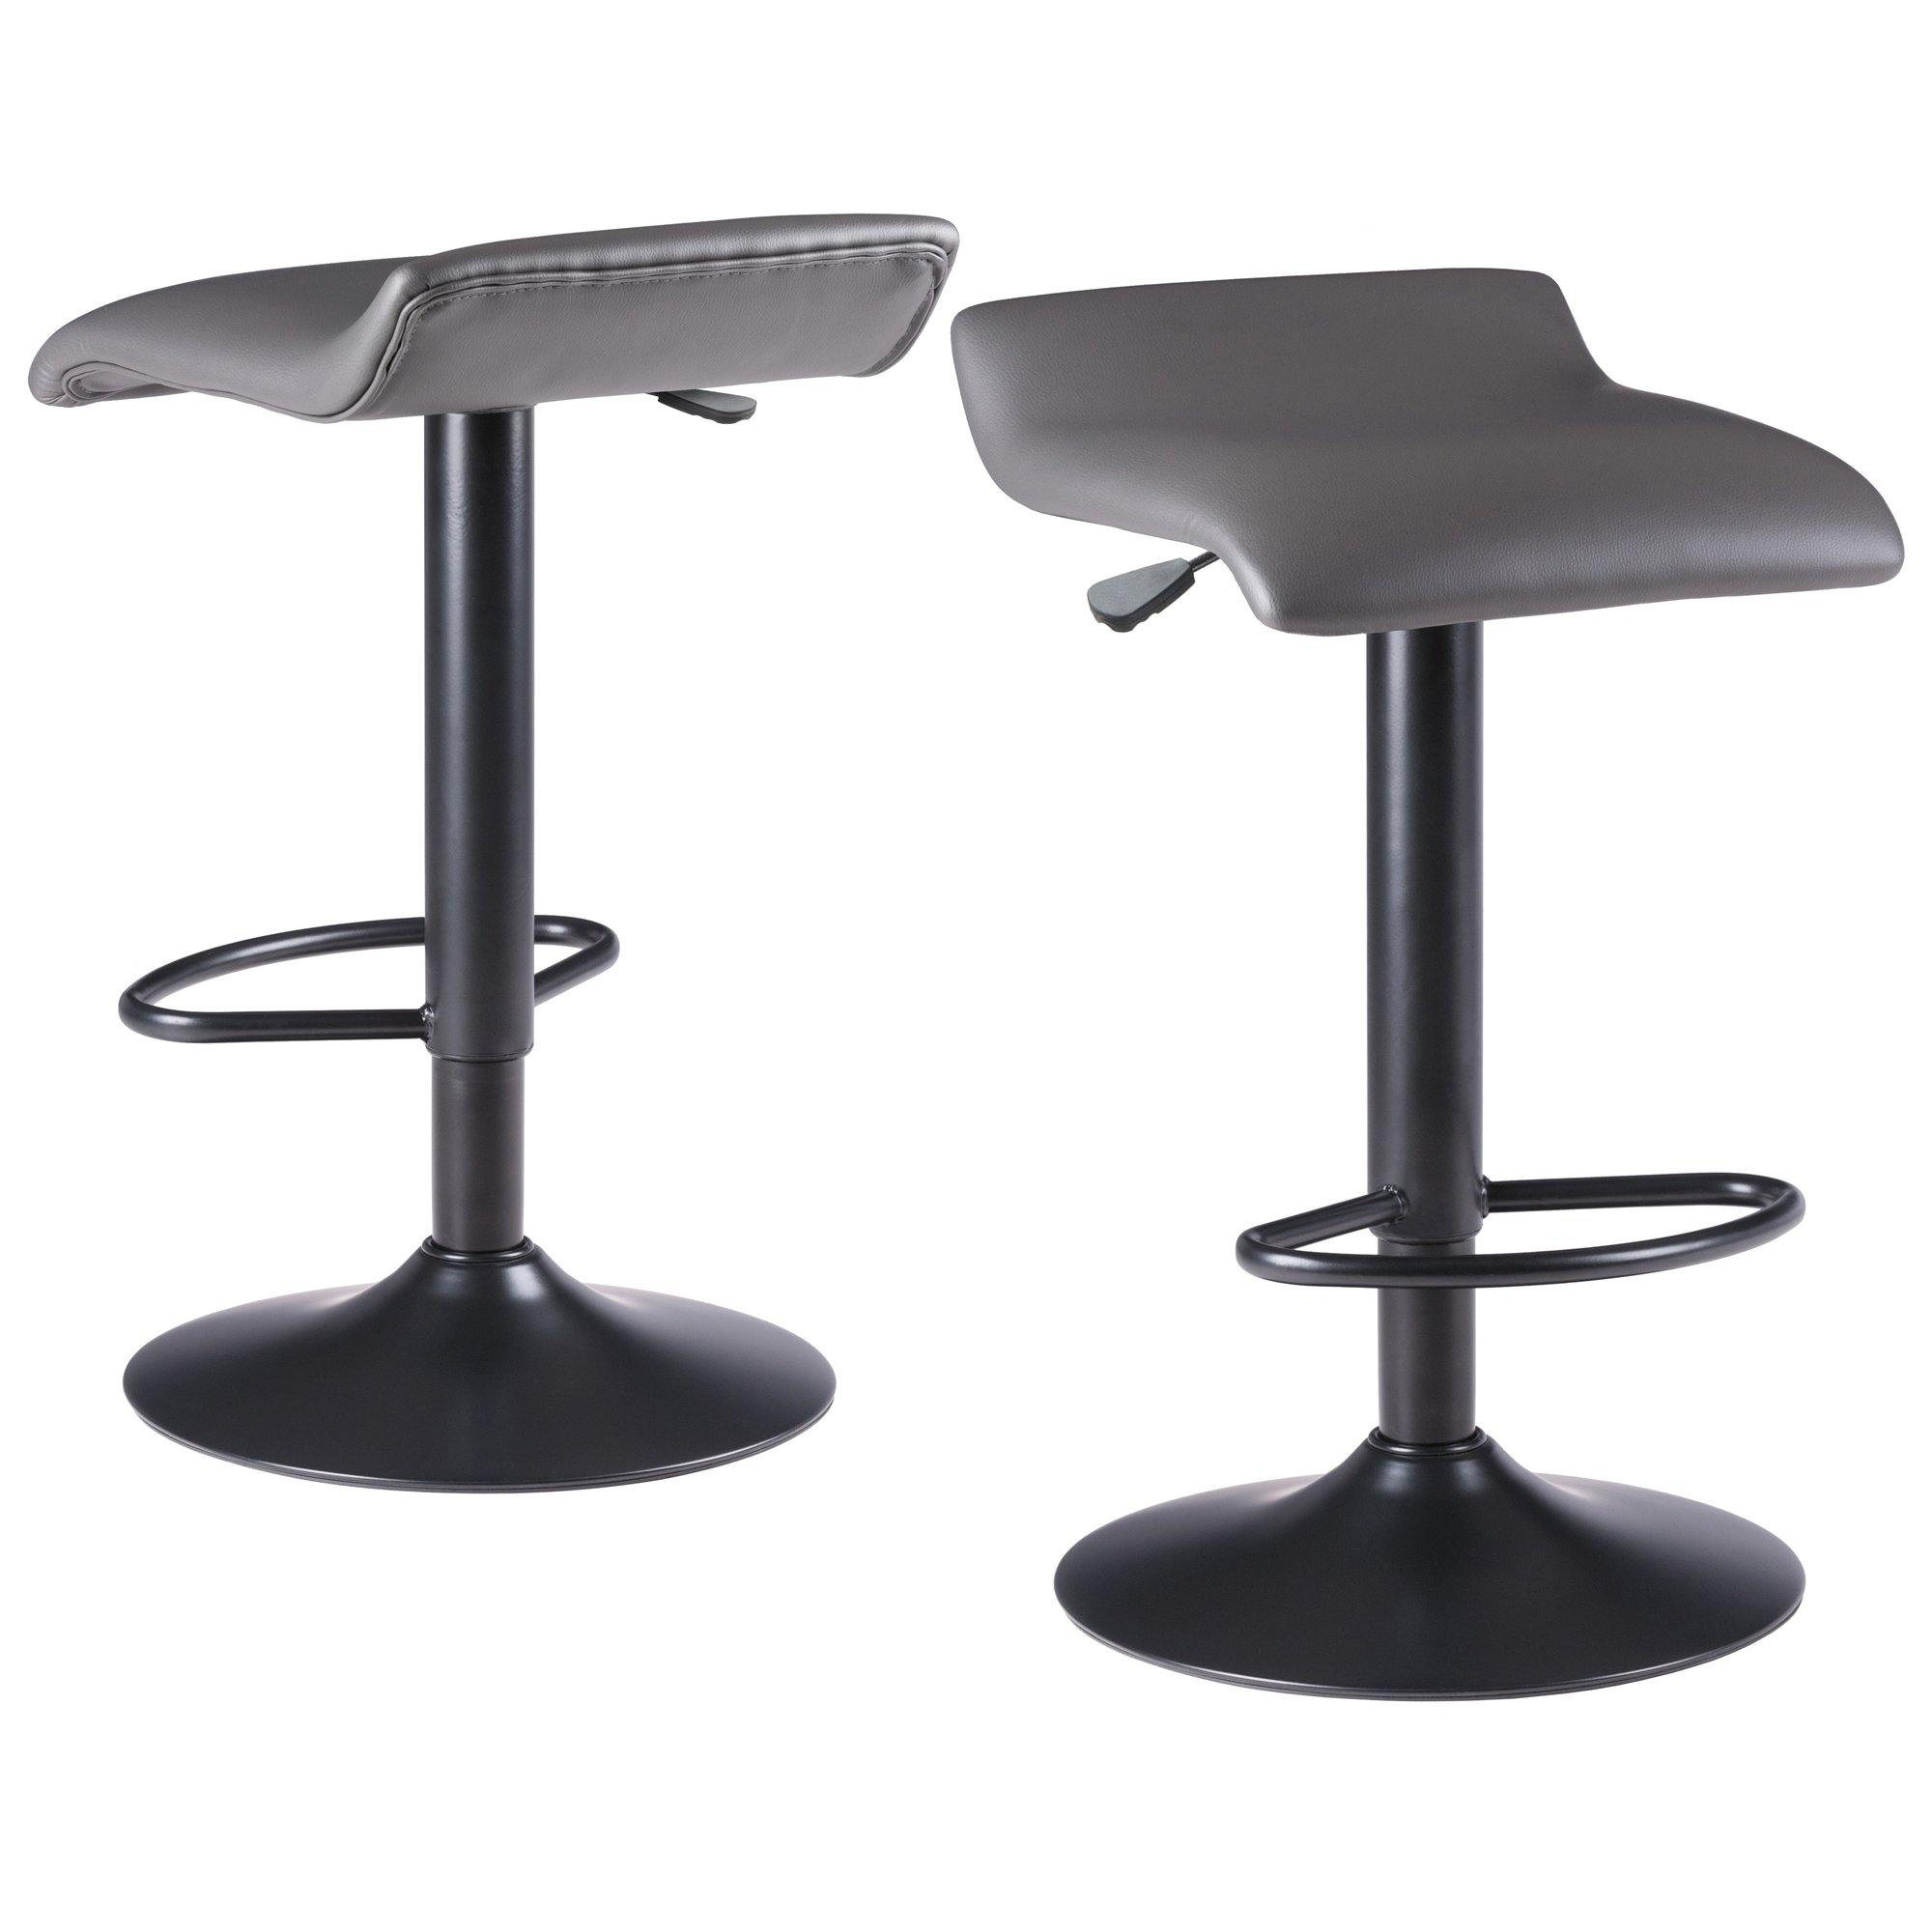 Tarah Adjustable Swivel Stools, 2-Pc Set, Black & Slate Gray - My USA Furniture